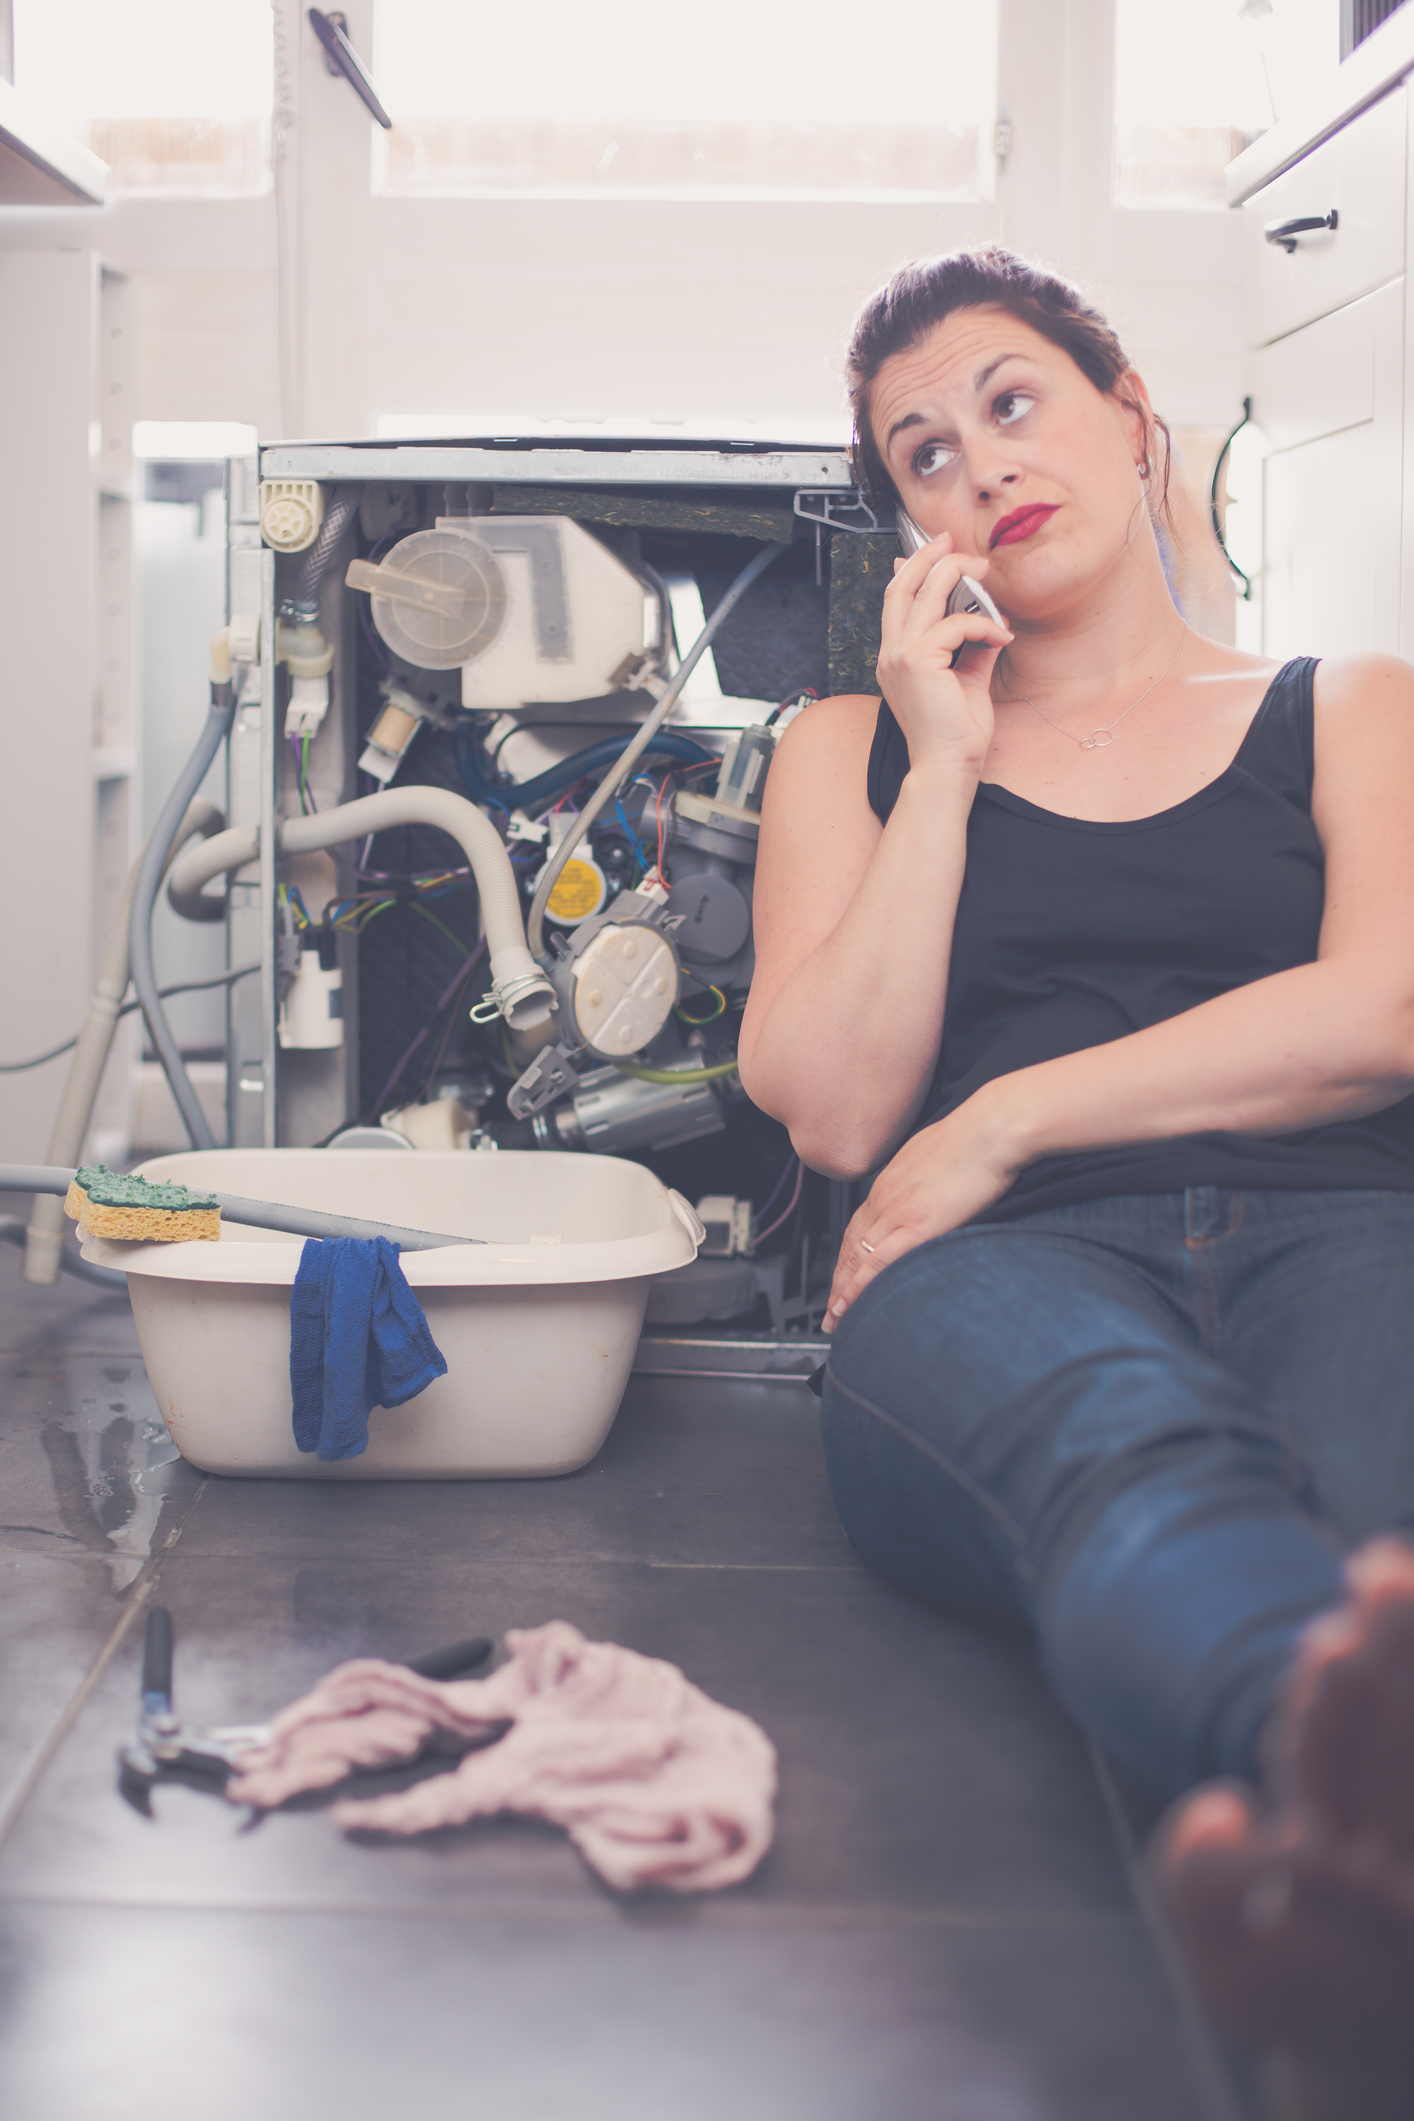 Woman is calling a plumber to repair the leak